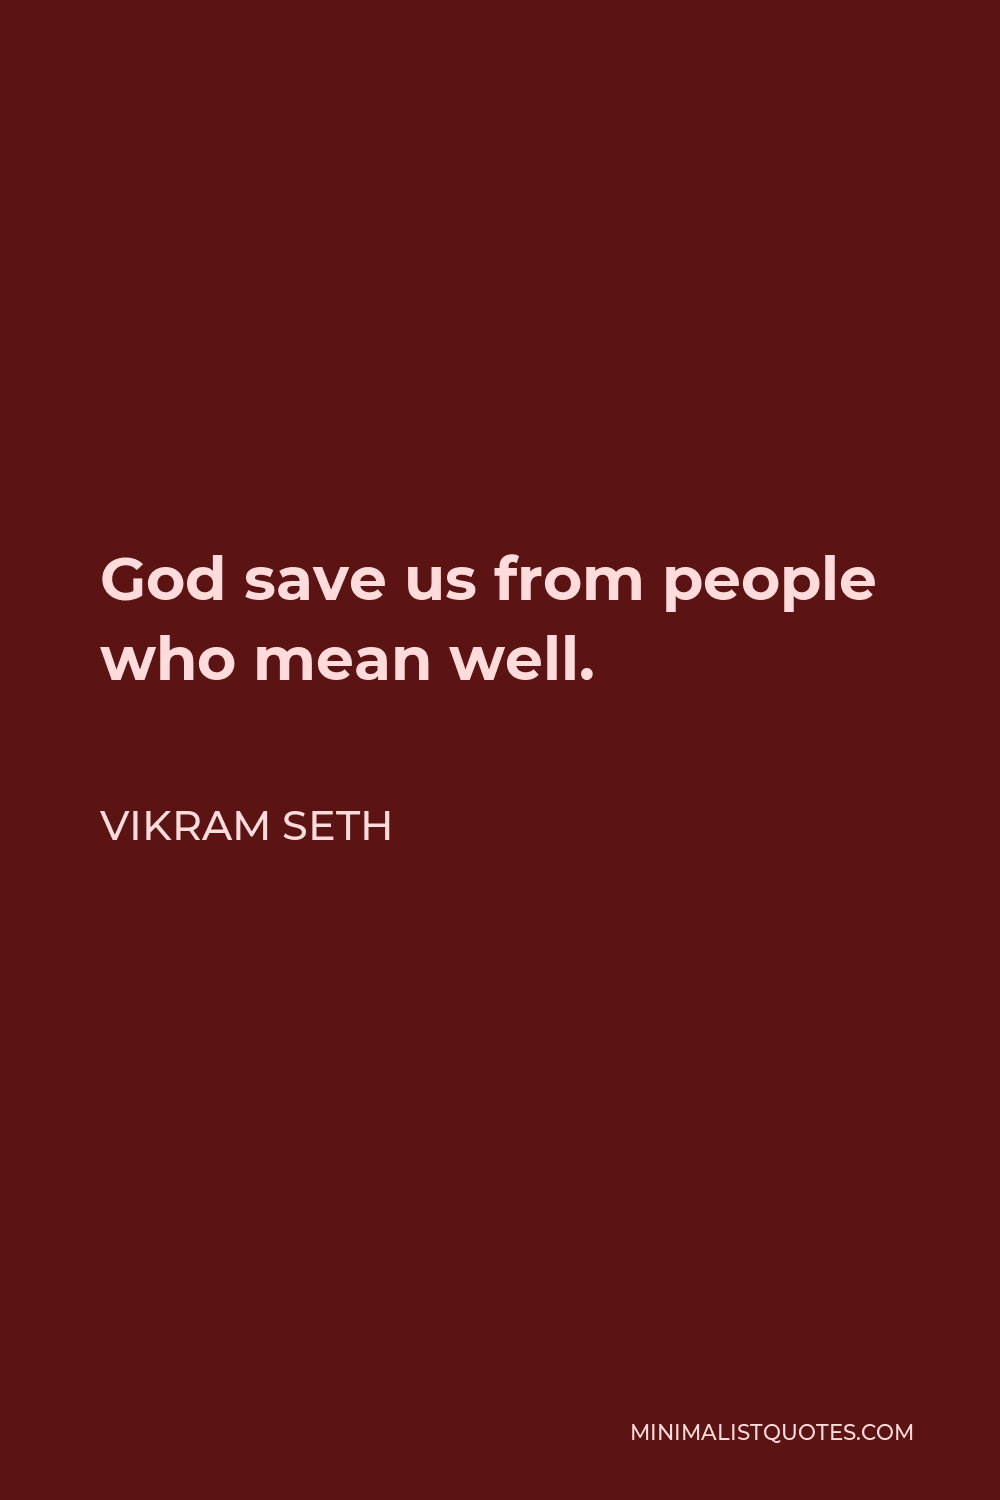 Vikram Seth Quote - God save us from people who mean well.